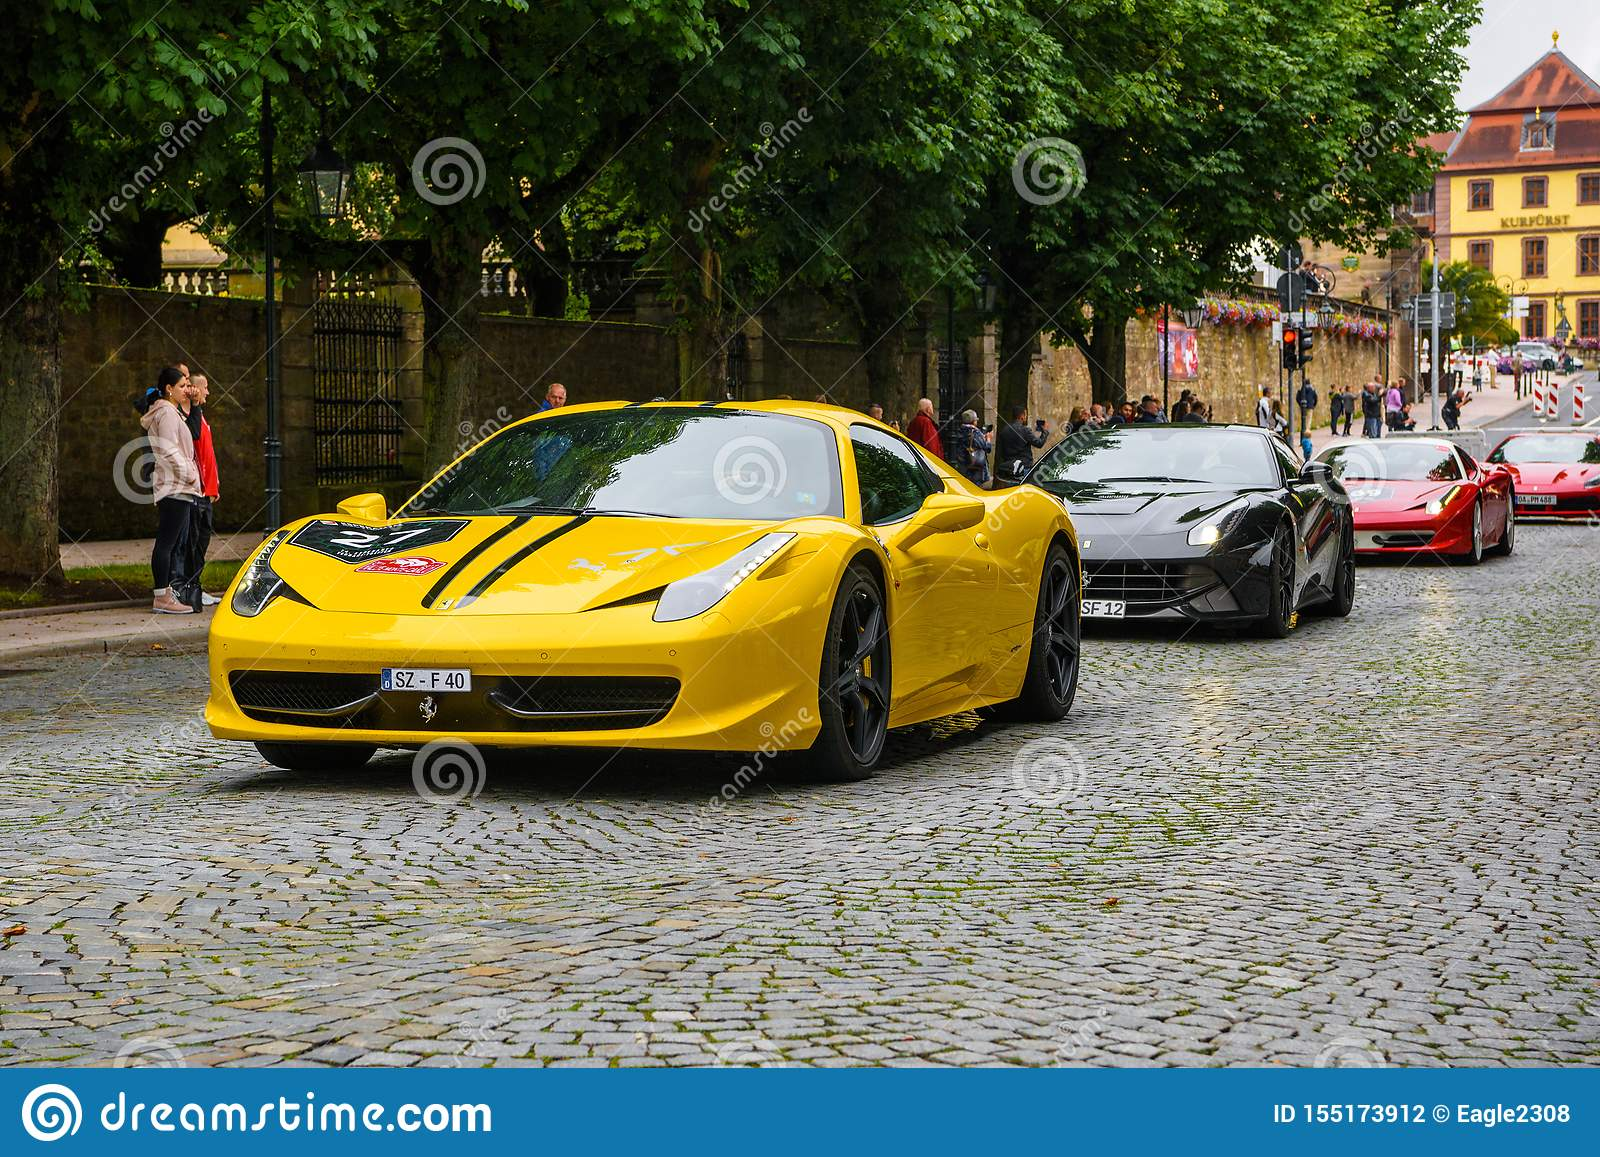 Germany Fulda Jul 2019 Yellow Ferrari 458 Spider Coupe Was Introduced At The 2011 Frankfurt Motor Show This Convertible Editorial Photography Image Of Front Italia 155173912